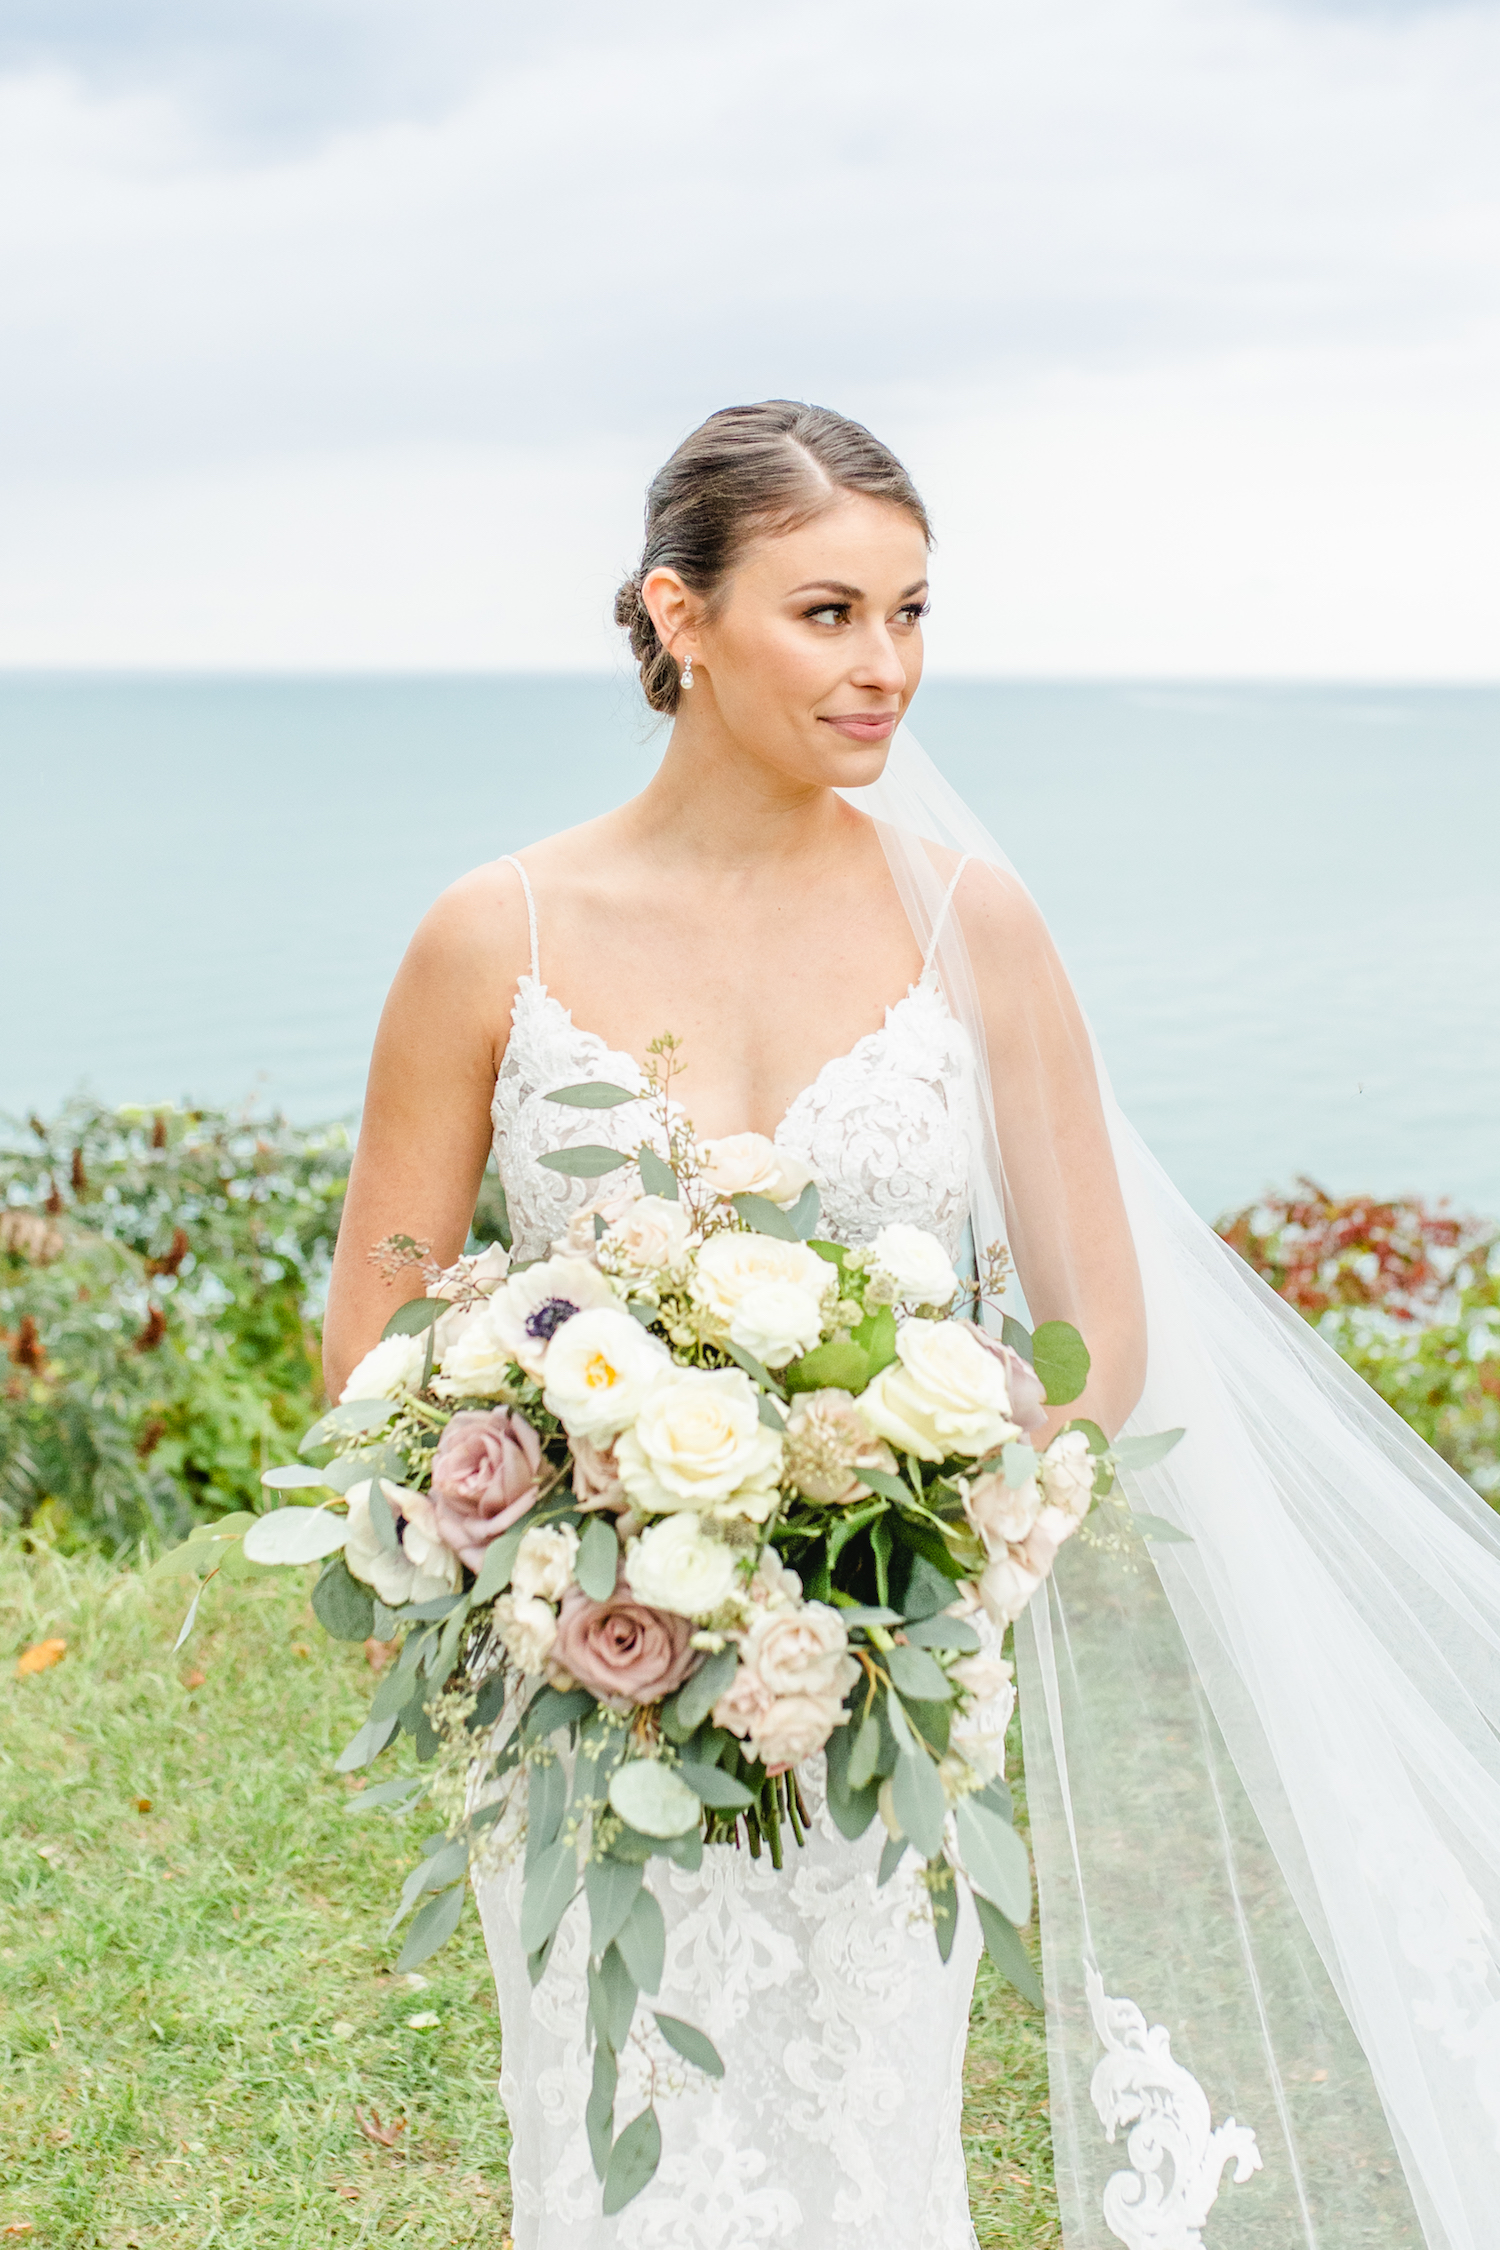 Bride looking off holding bouquet at the lakehouse wedding